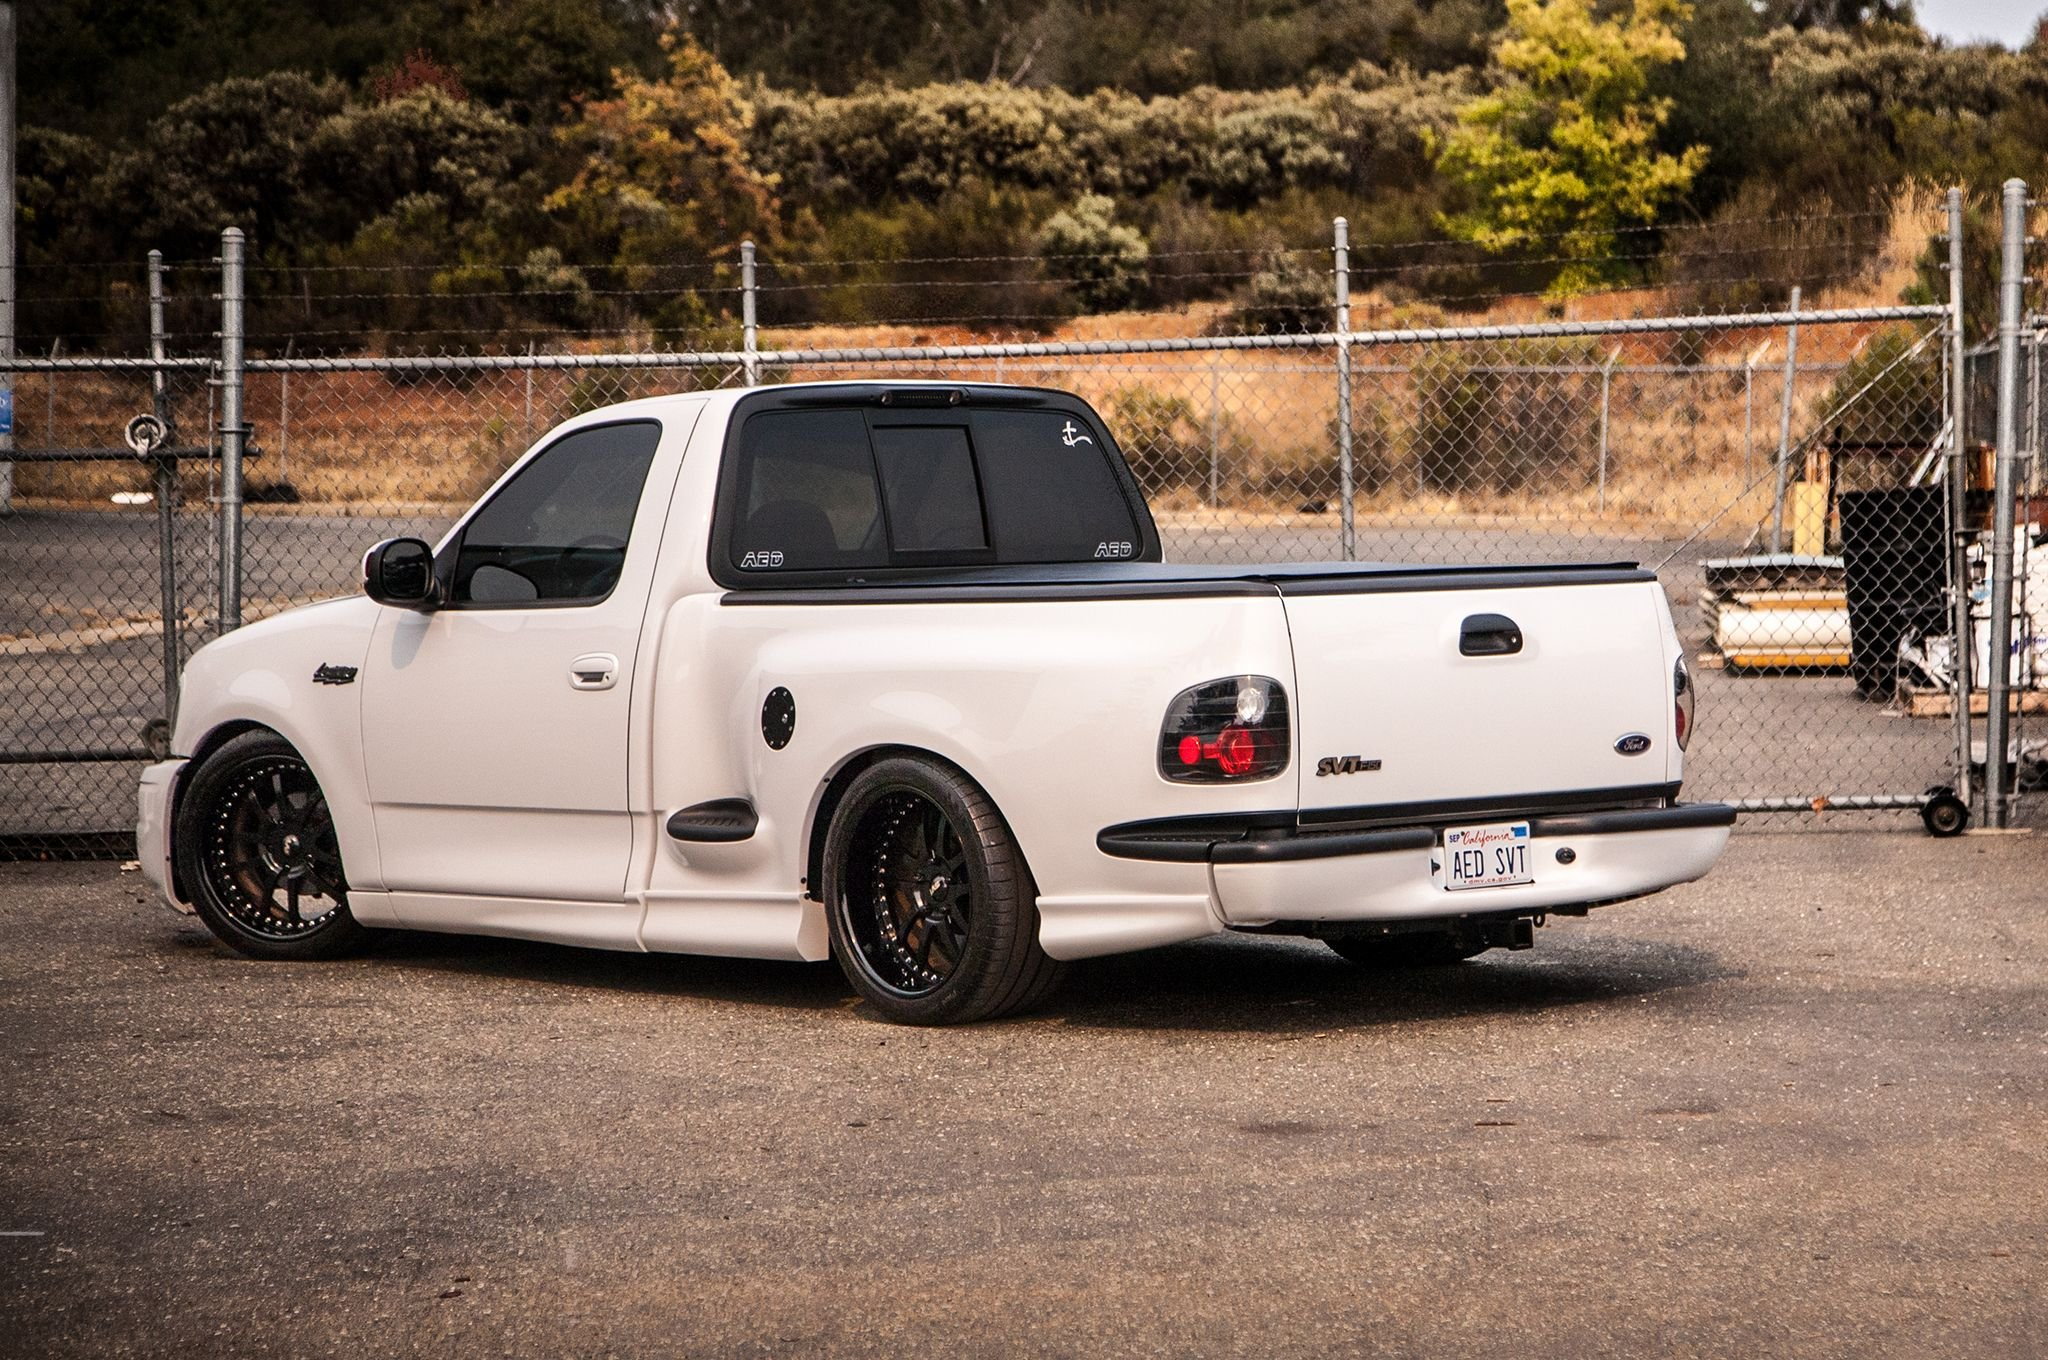 2003 Ford Lightning Cars Modified Pickup White Wallpaper 2048x1360 824626 Wallpaperup